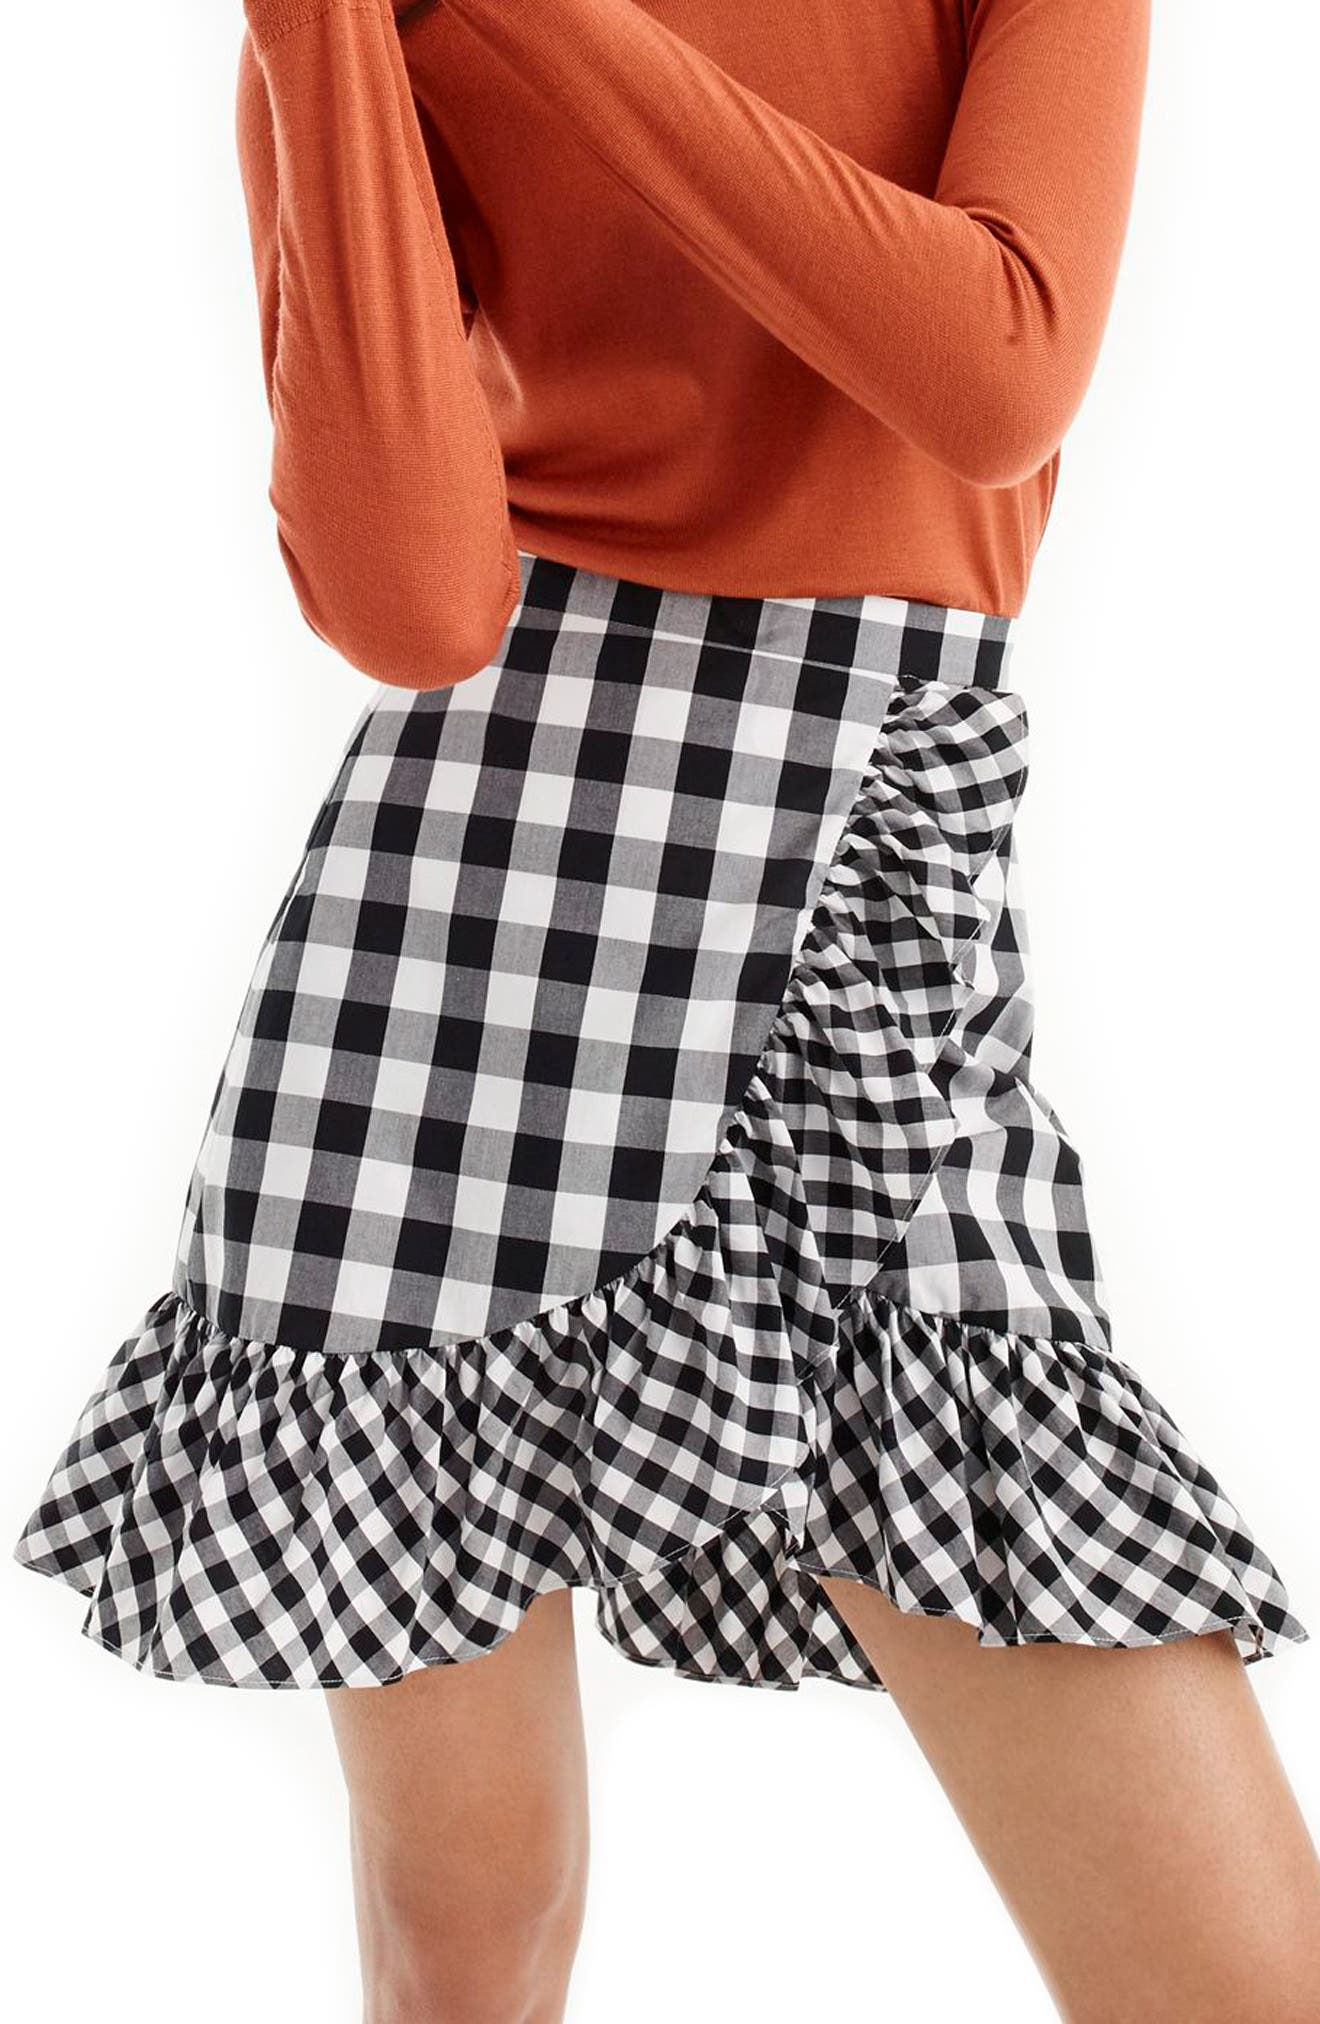 Pistachio Gingham Cotton Poplin Ruffle Skirt,                             Main thumbnail 1, color,                             010